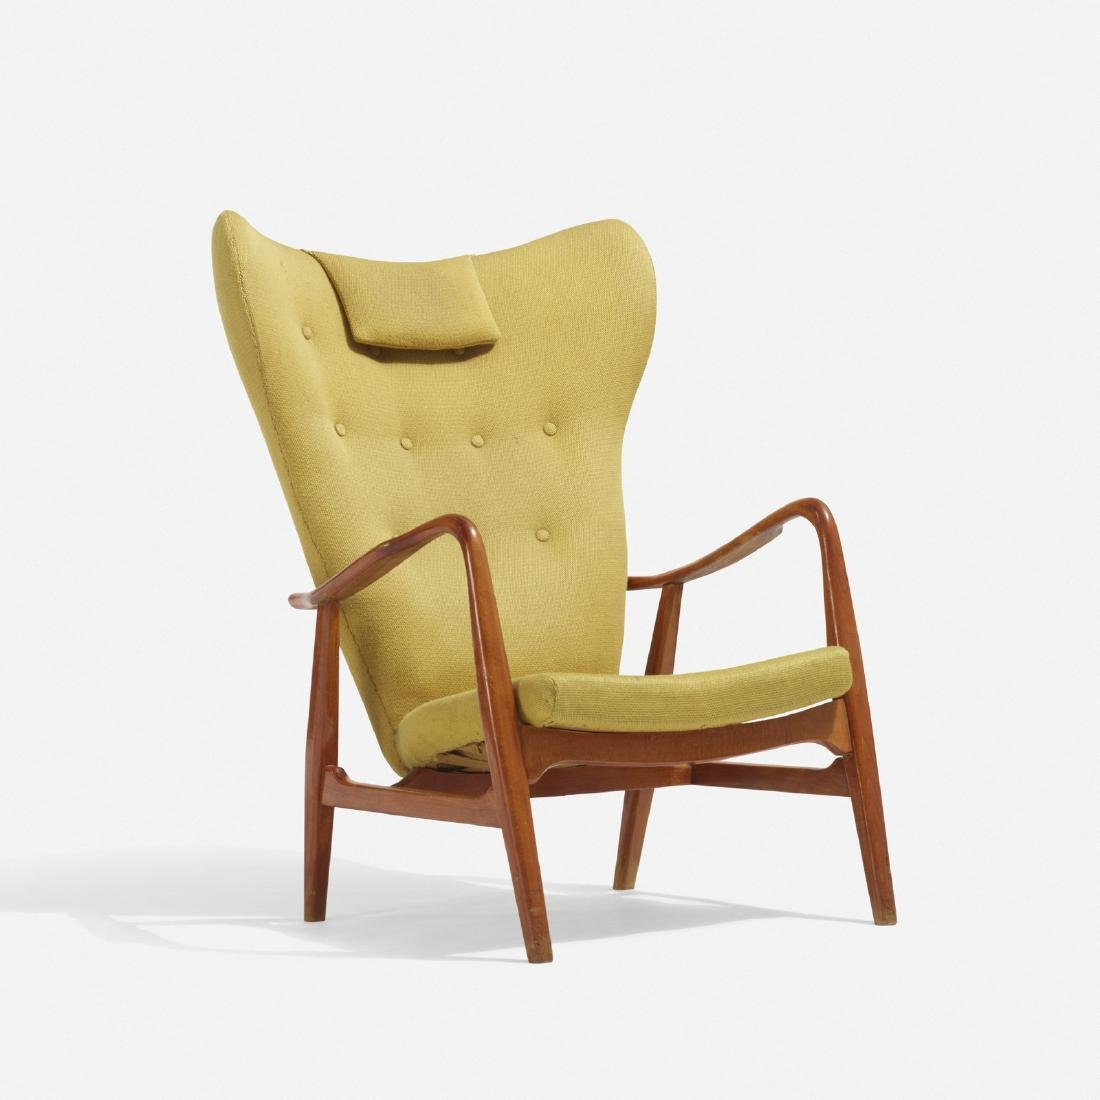 Acton Schubel and Ib Madsen, wingback armchair